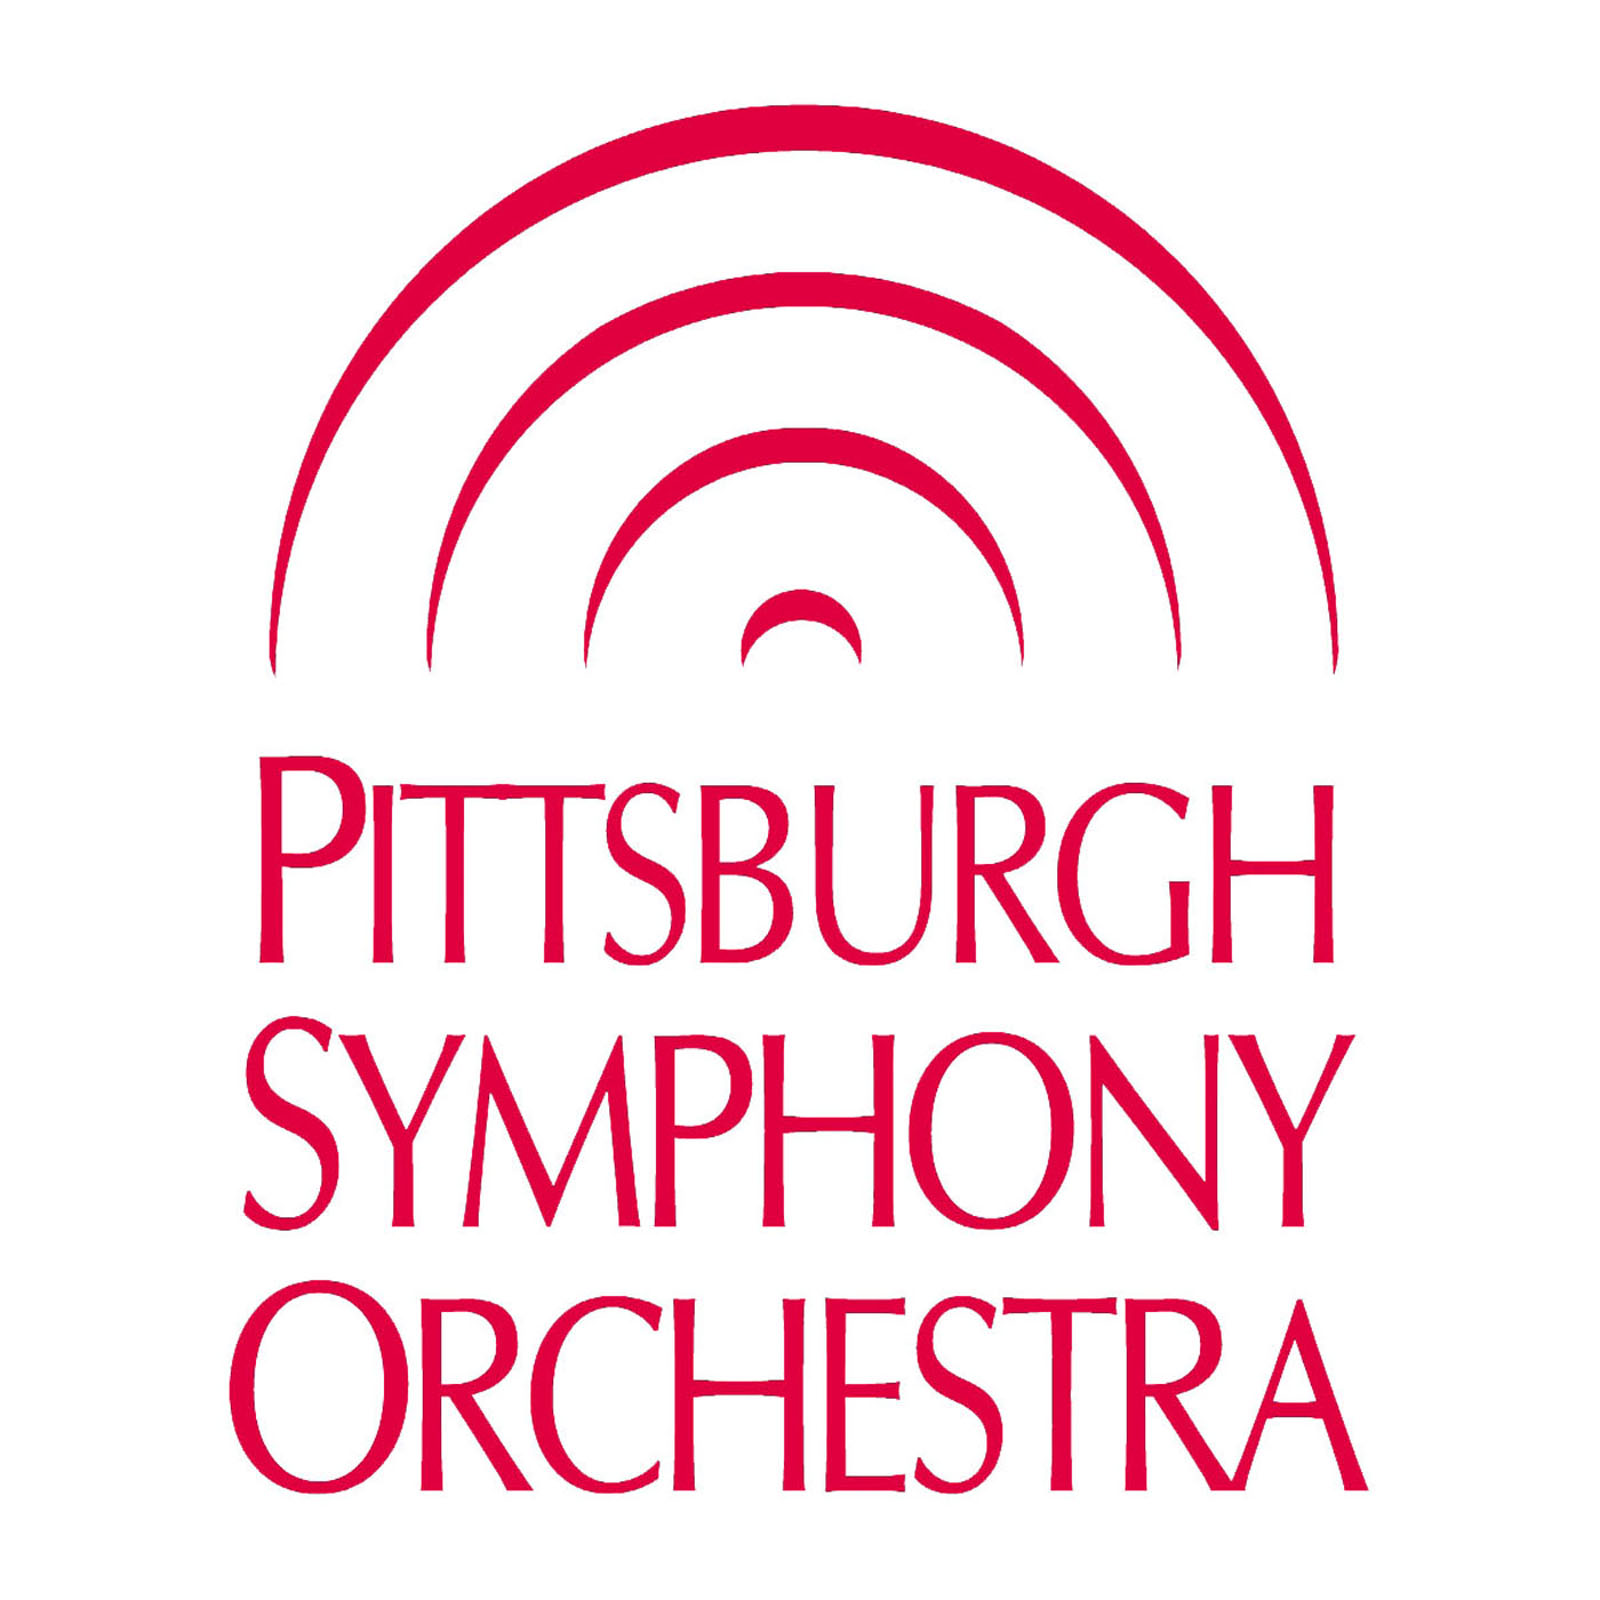 Pittsburgh Symphony Orchestra Strike Ends: PSI Management and PSO Musicians Agree to New Contract